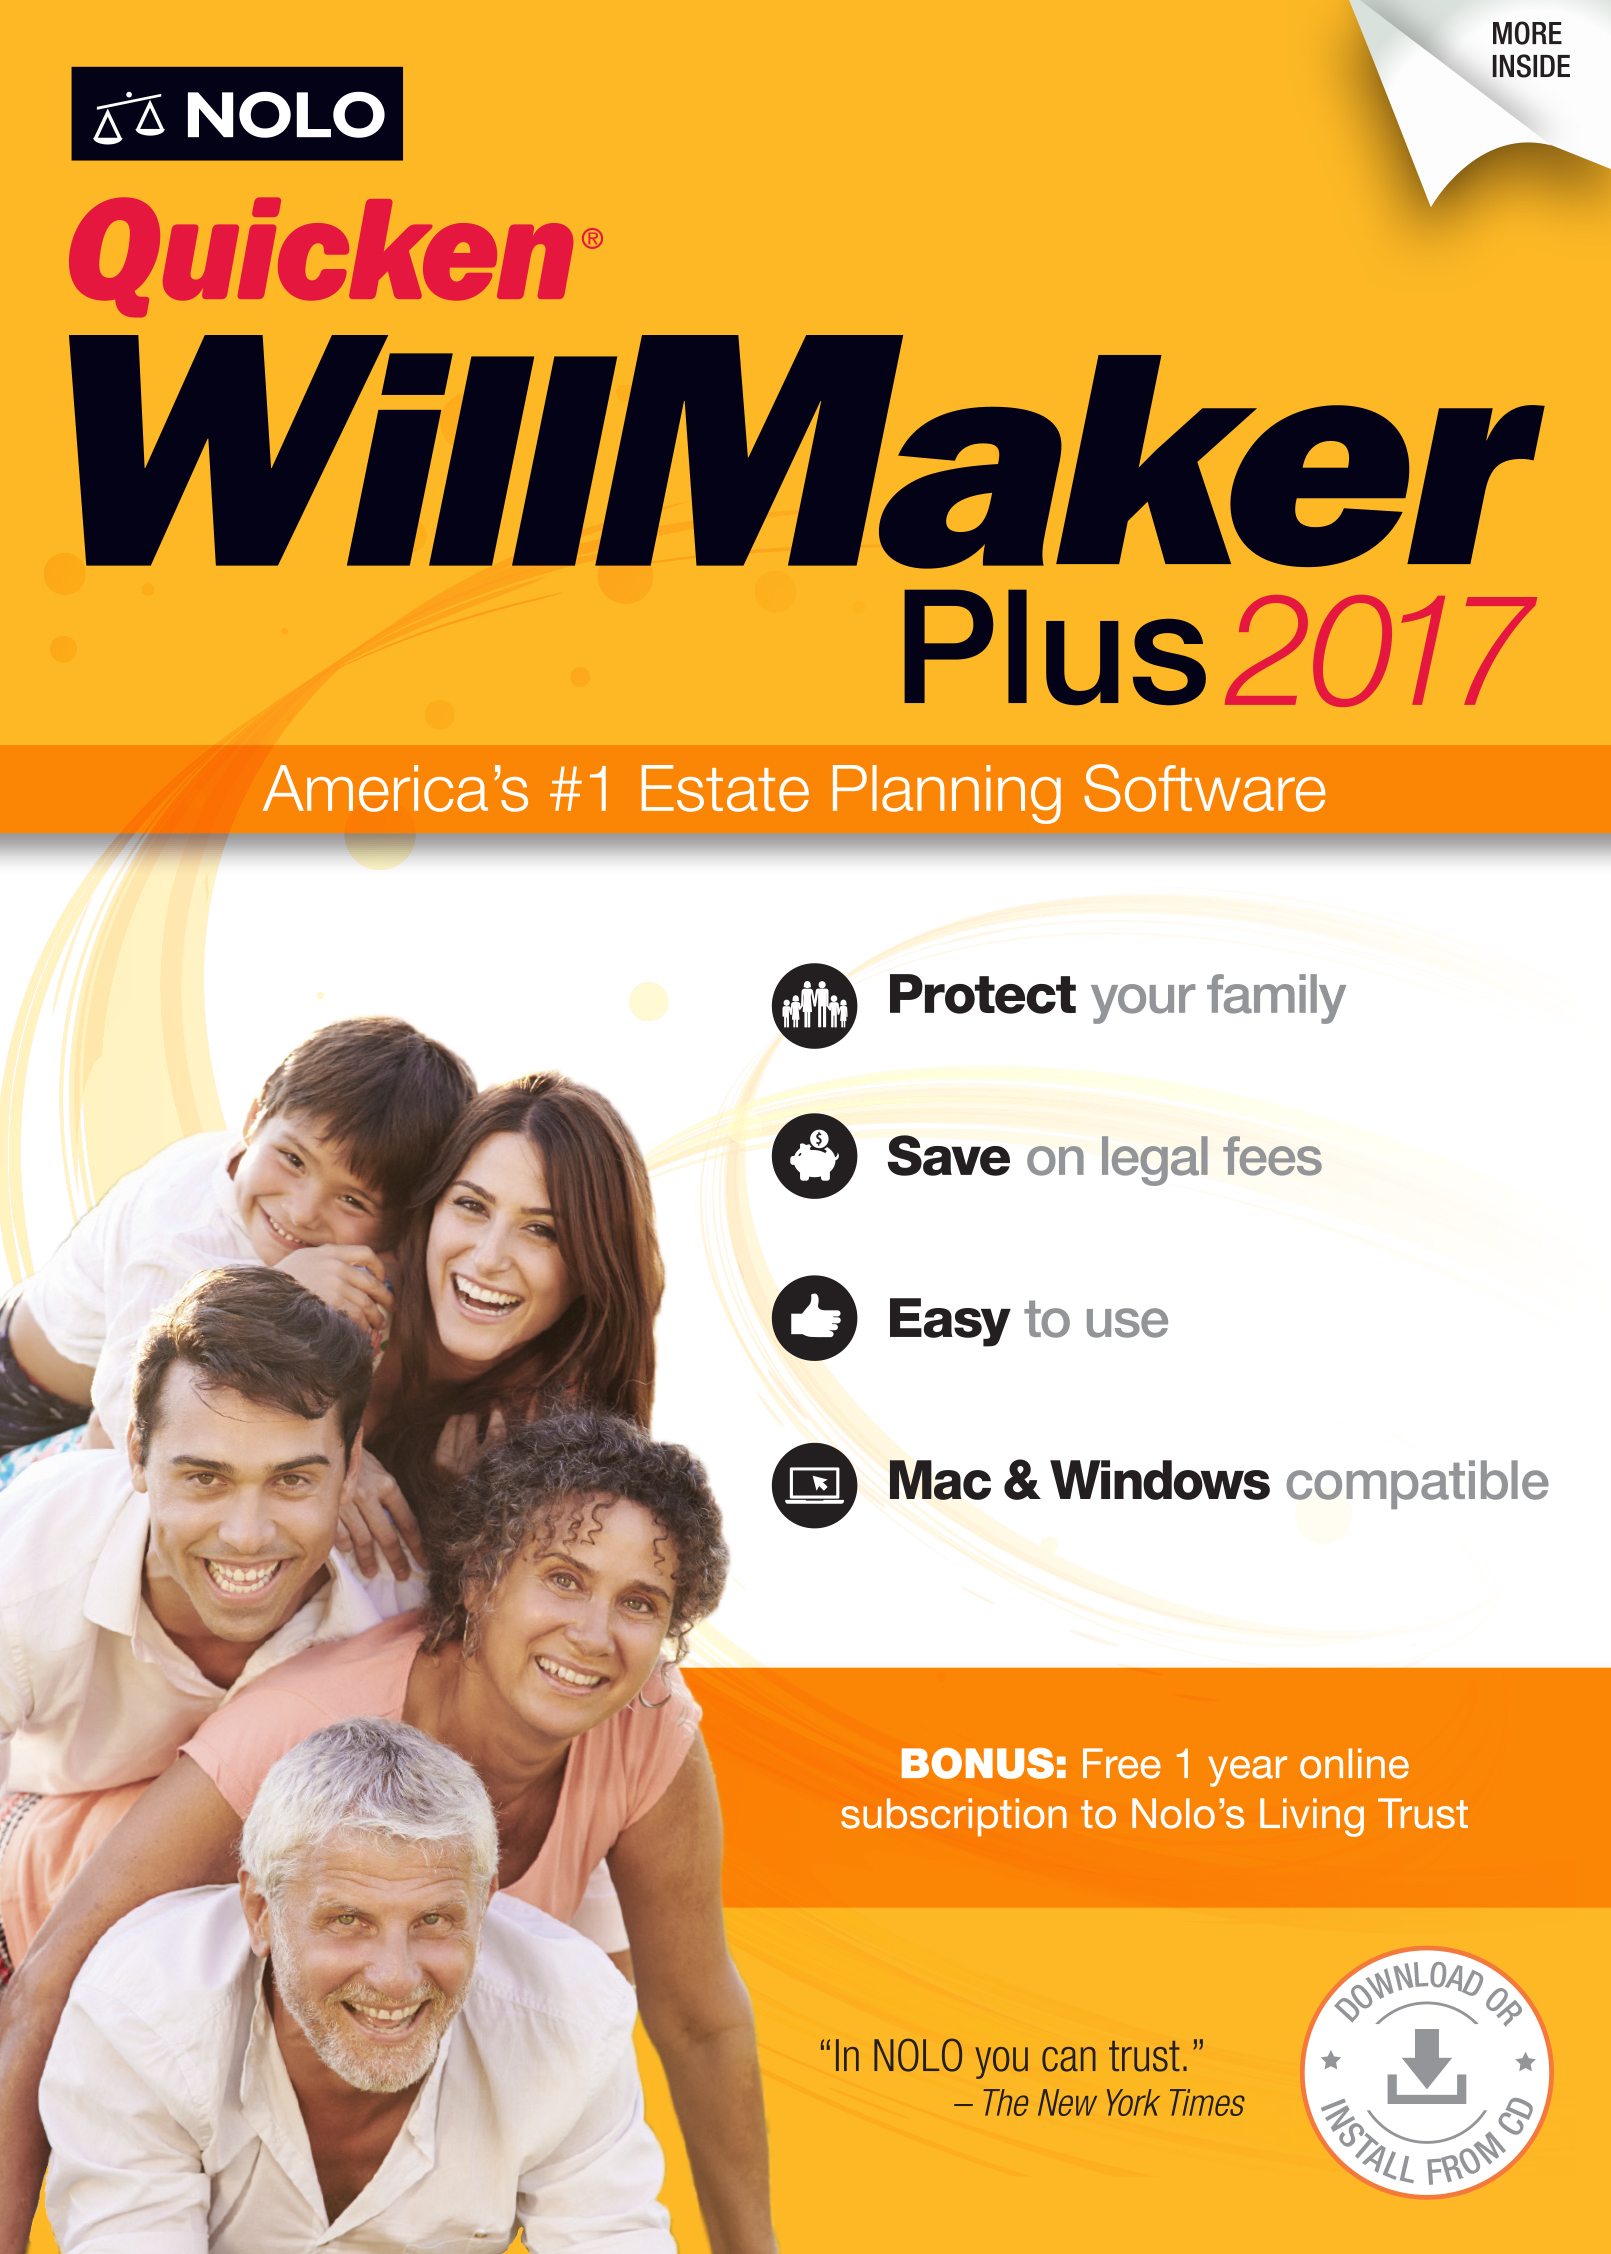 quicken-willmaker-plus-2017-mac-and-windows-online-code